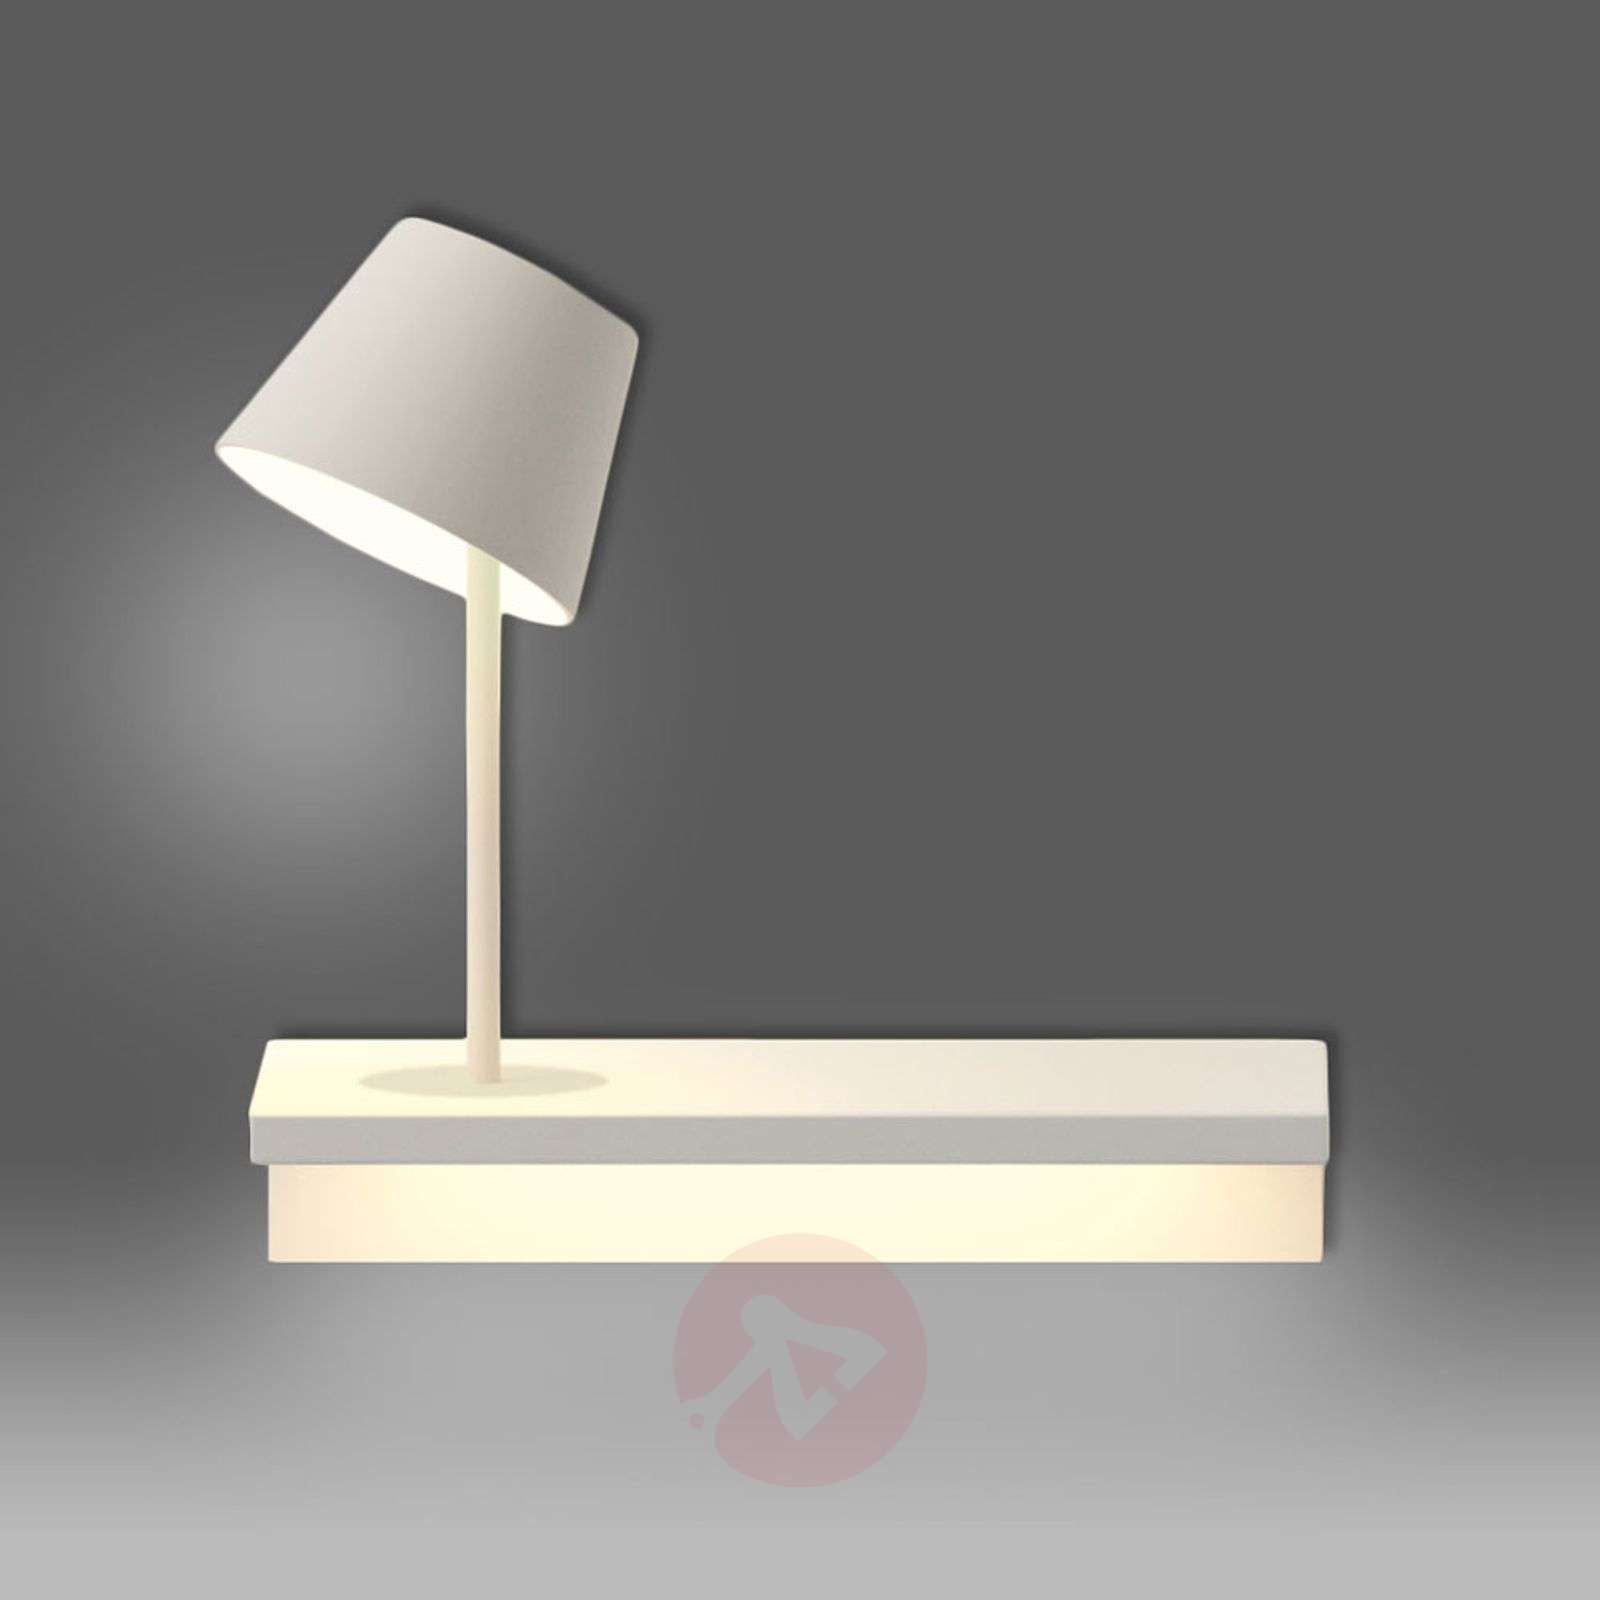 Moderna lámpara de pared LED Suite 29 cm-9515080-01